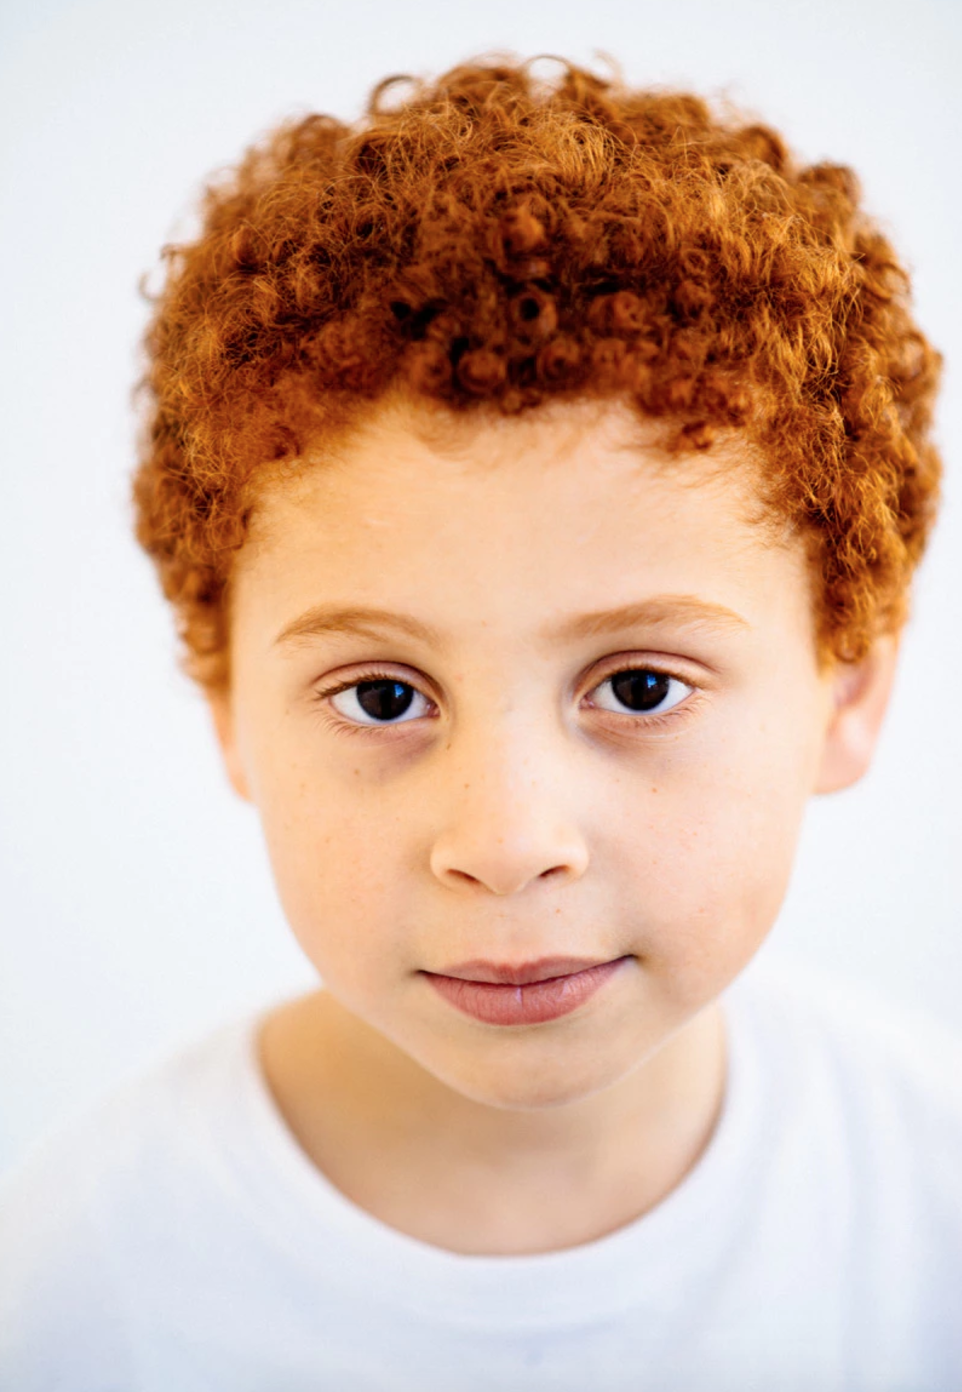 MULTIRACIAL REDHEADS CHALLENGE THE WAY WE SEE RACE via Swirl Nation Blog